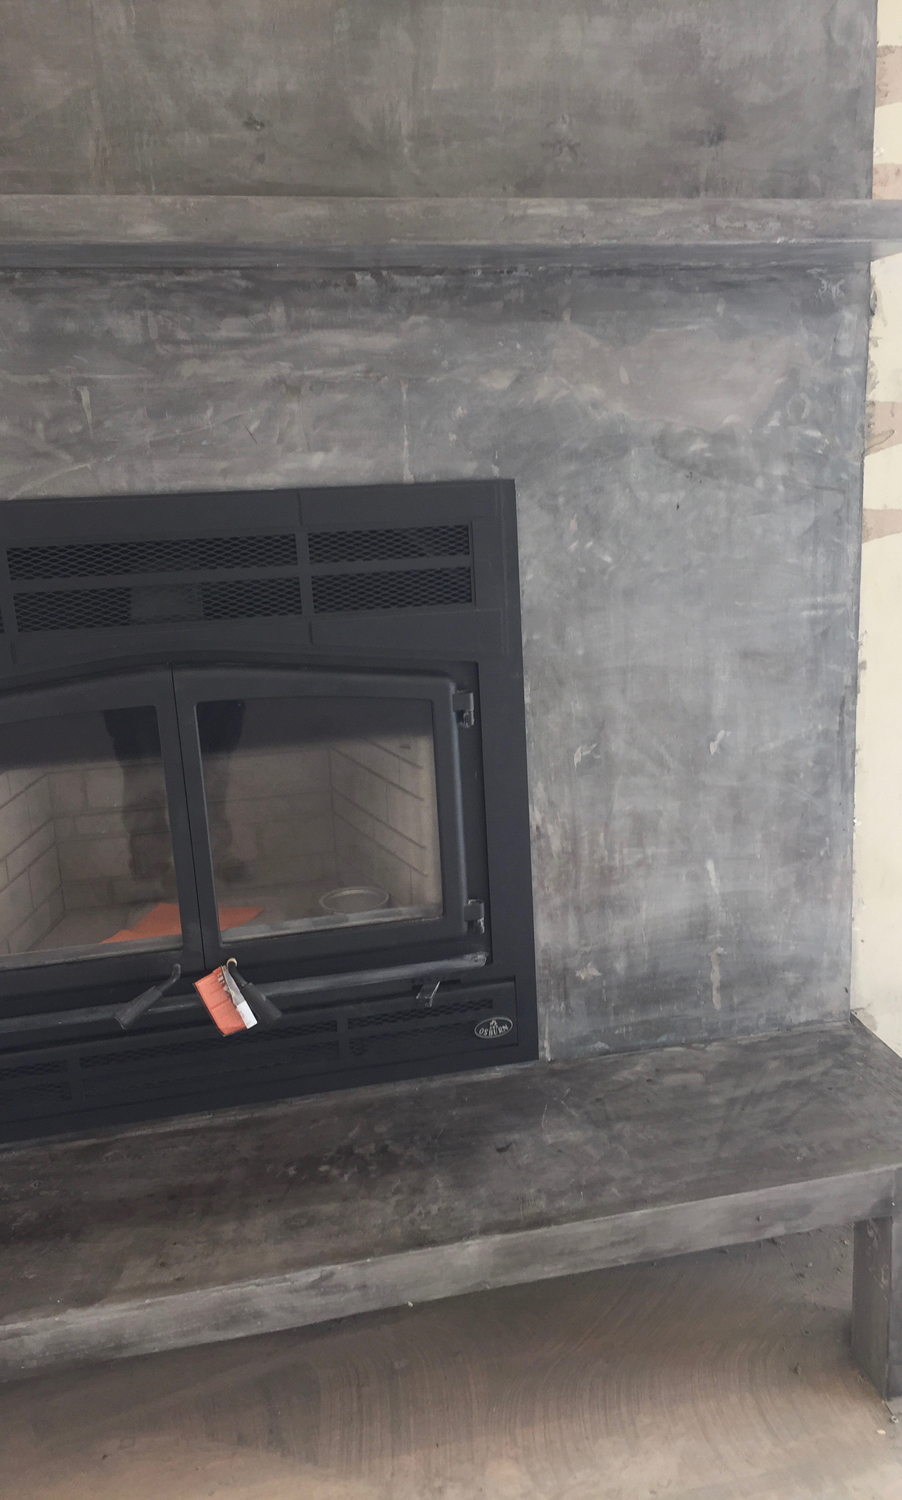 This is another photo of the fireplace with natural concrete.